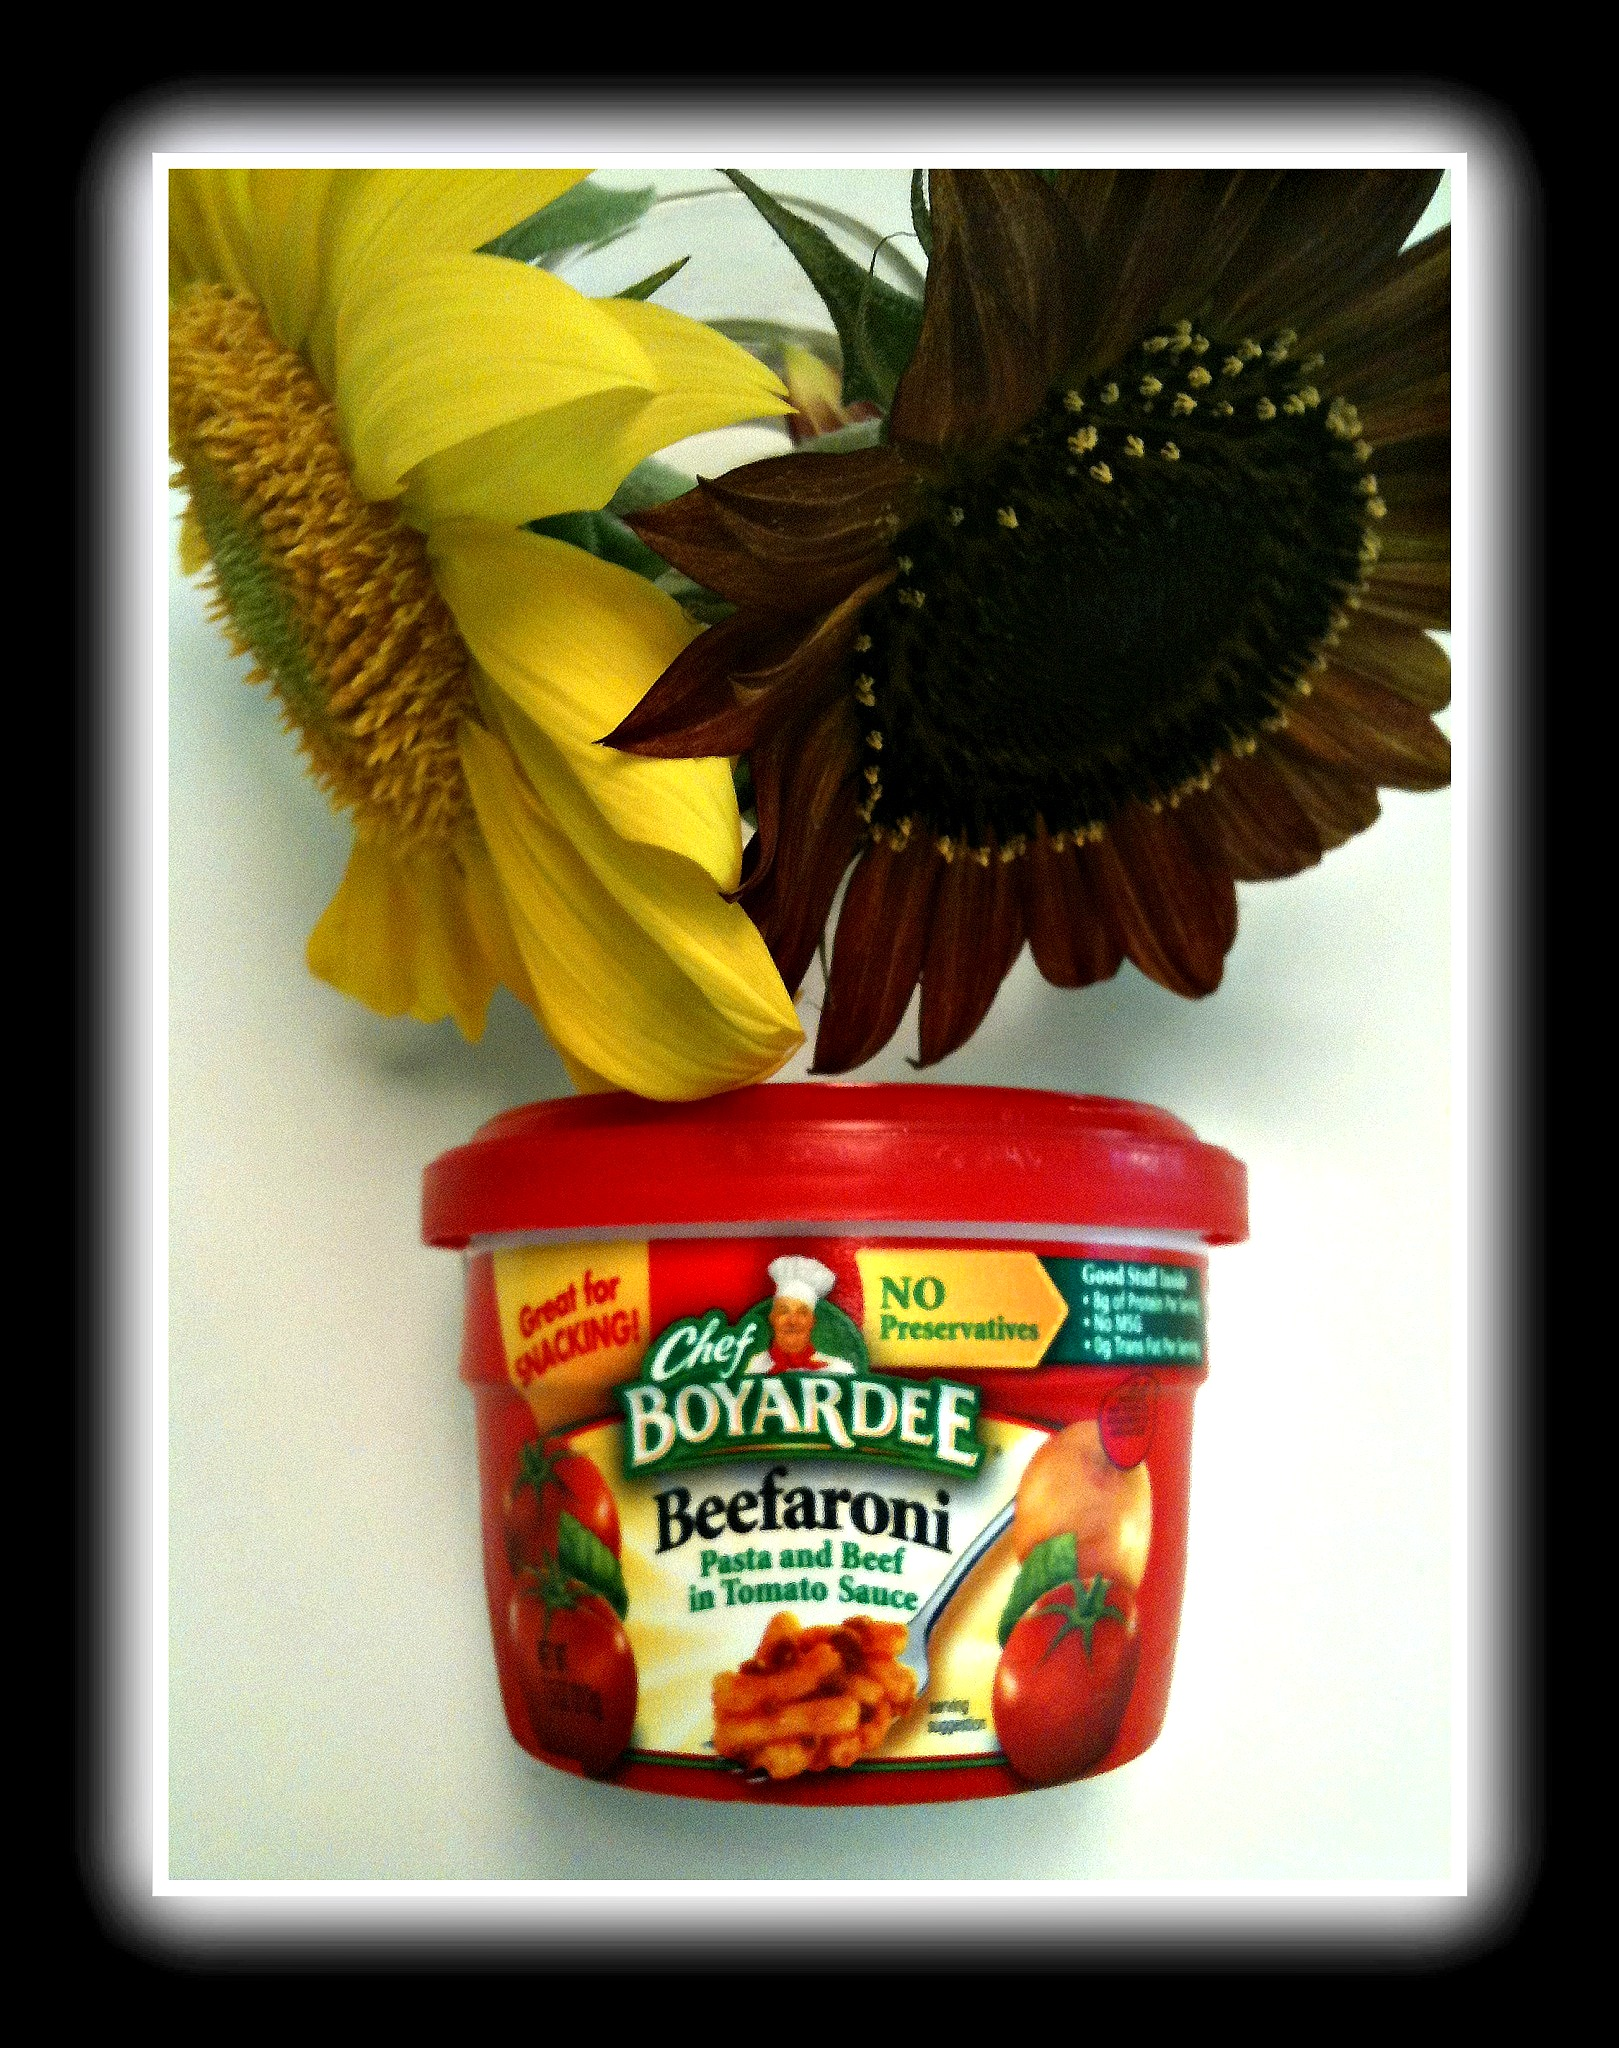 Beefaroni and sunflowers